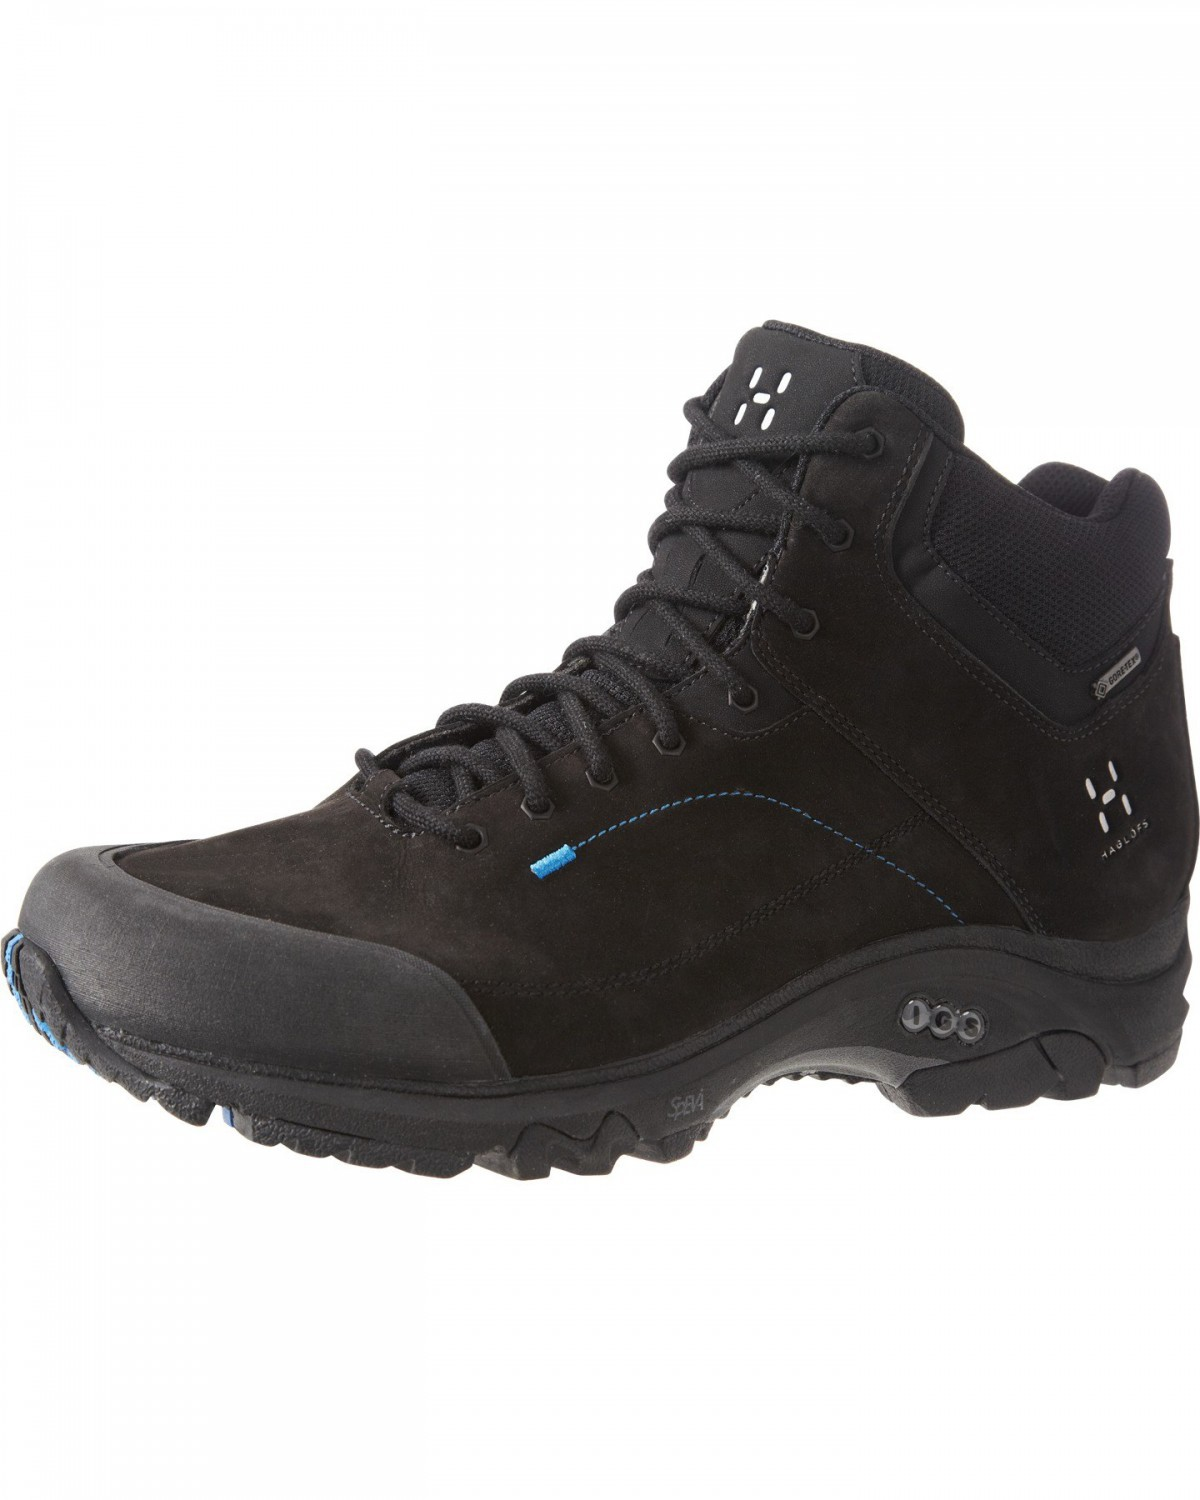 Haglofs Ridge II GT True Black/Gale Blue-30